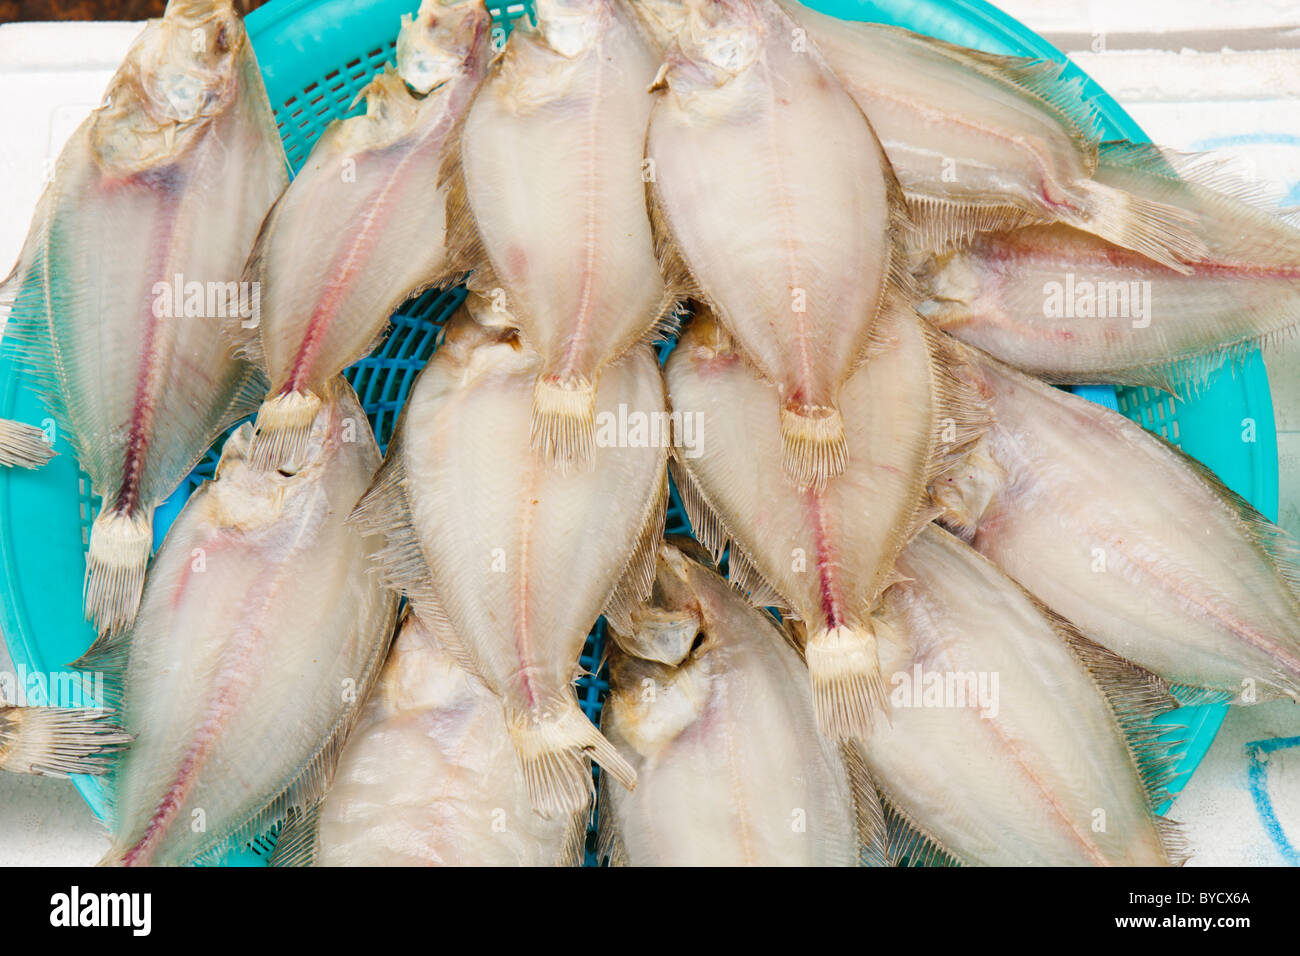 Flatfish for sale - Stock Image